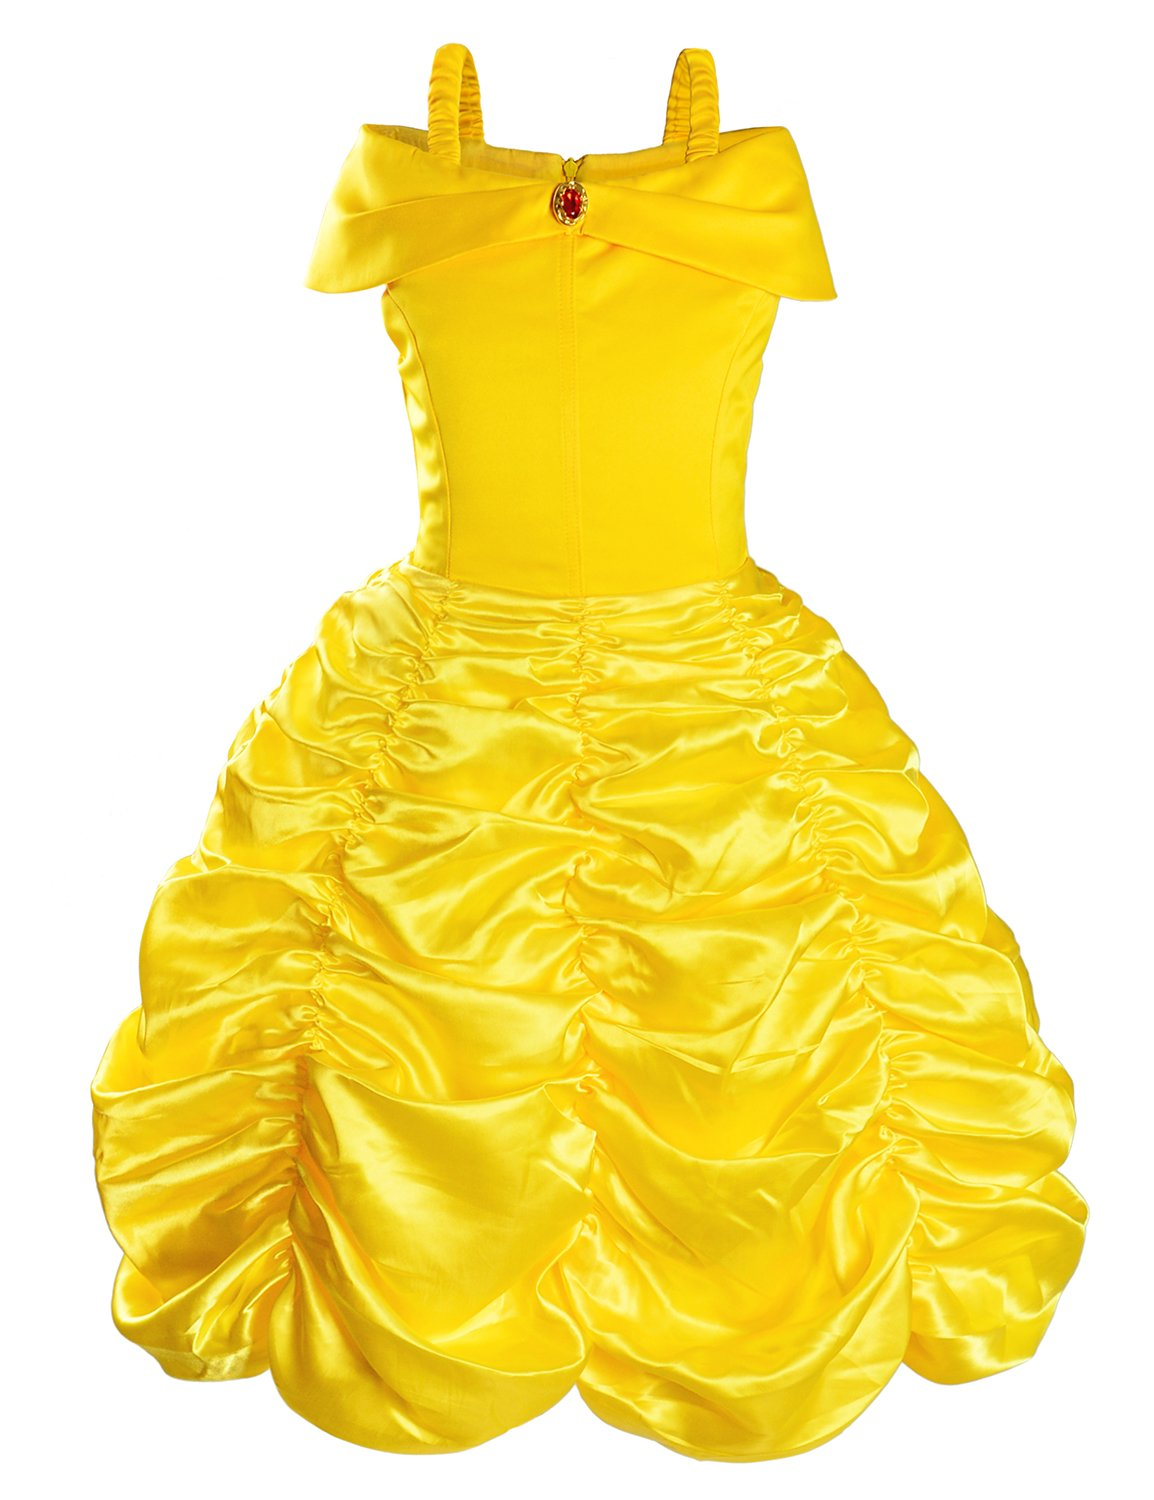 Princess Belle Costume Birthday Party Fancy Yellow Dress Up For Little Girls 5-6 Years(125cm)